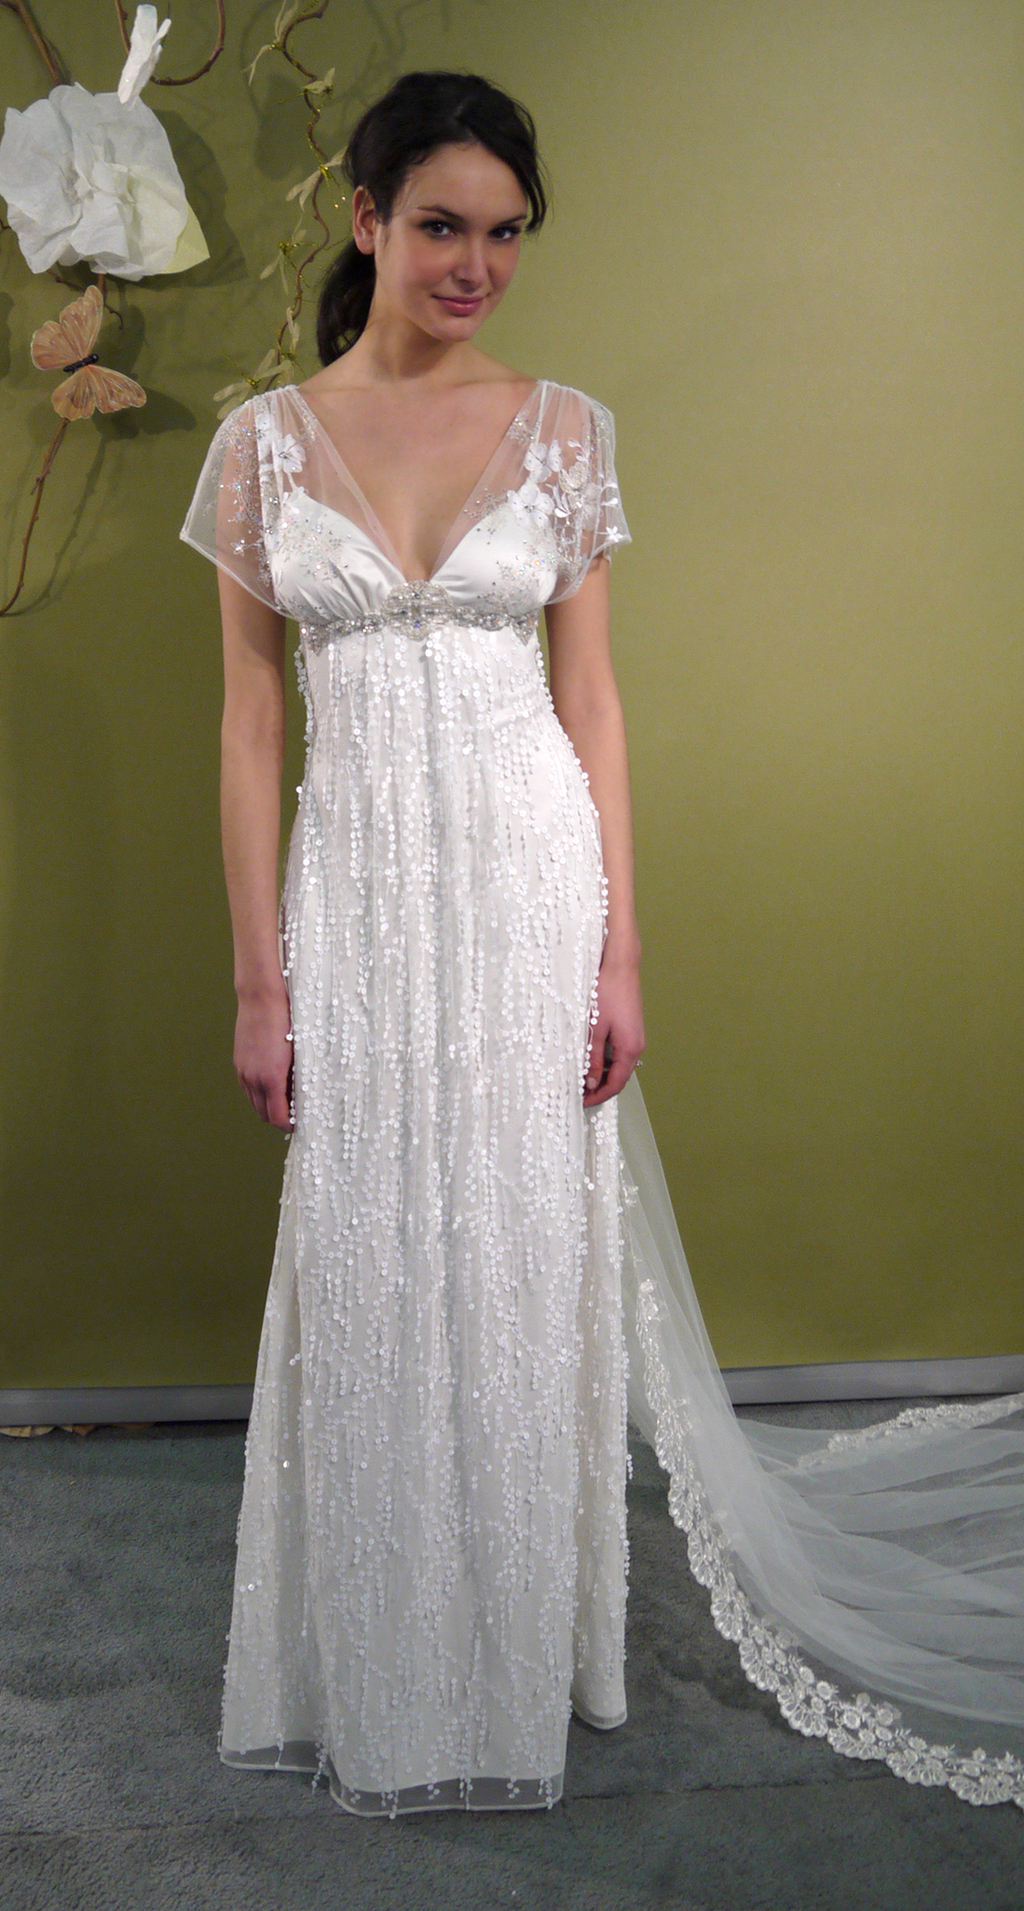 Fall-2011-wedding-dress-frances-claire-pettibone-bridal-gown-large.full